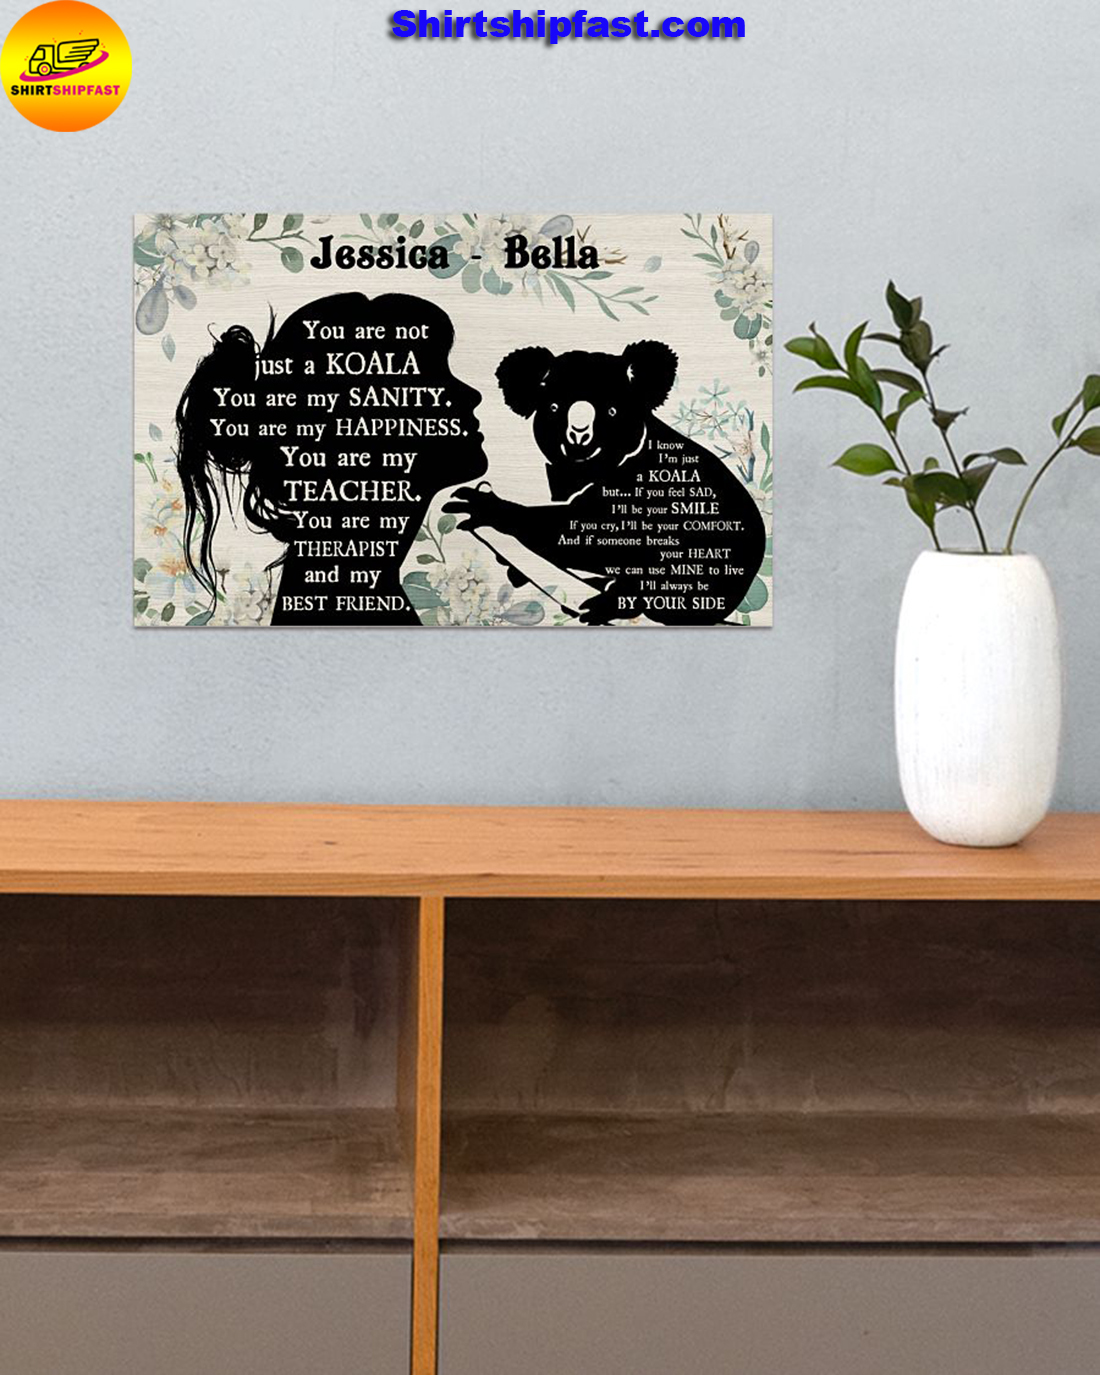 You are not just a koala personalized koala lover poster - Picture 3